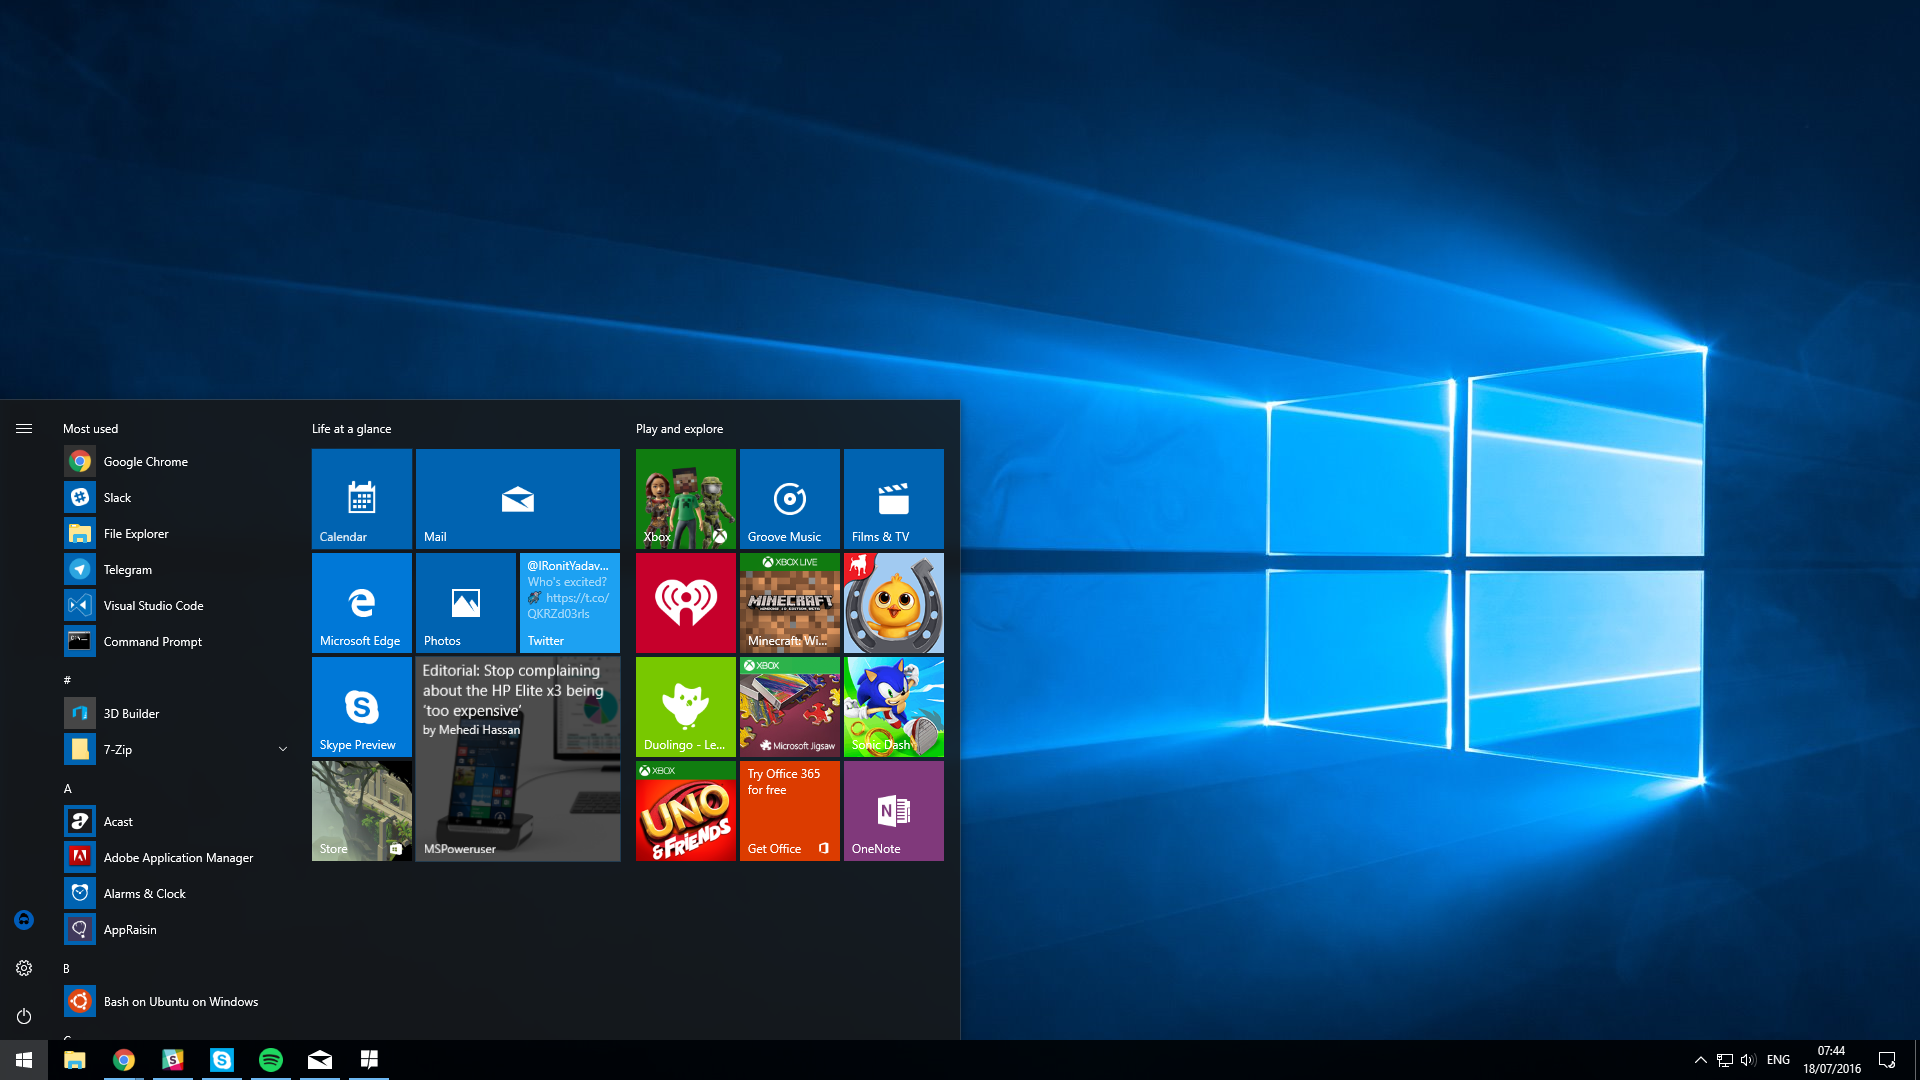 Microsoft releases windows 10 anniversary update 39 s rtm to for Microsoft windows windows